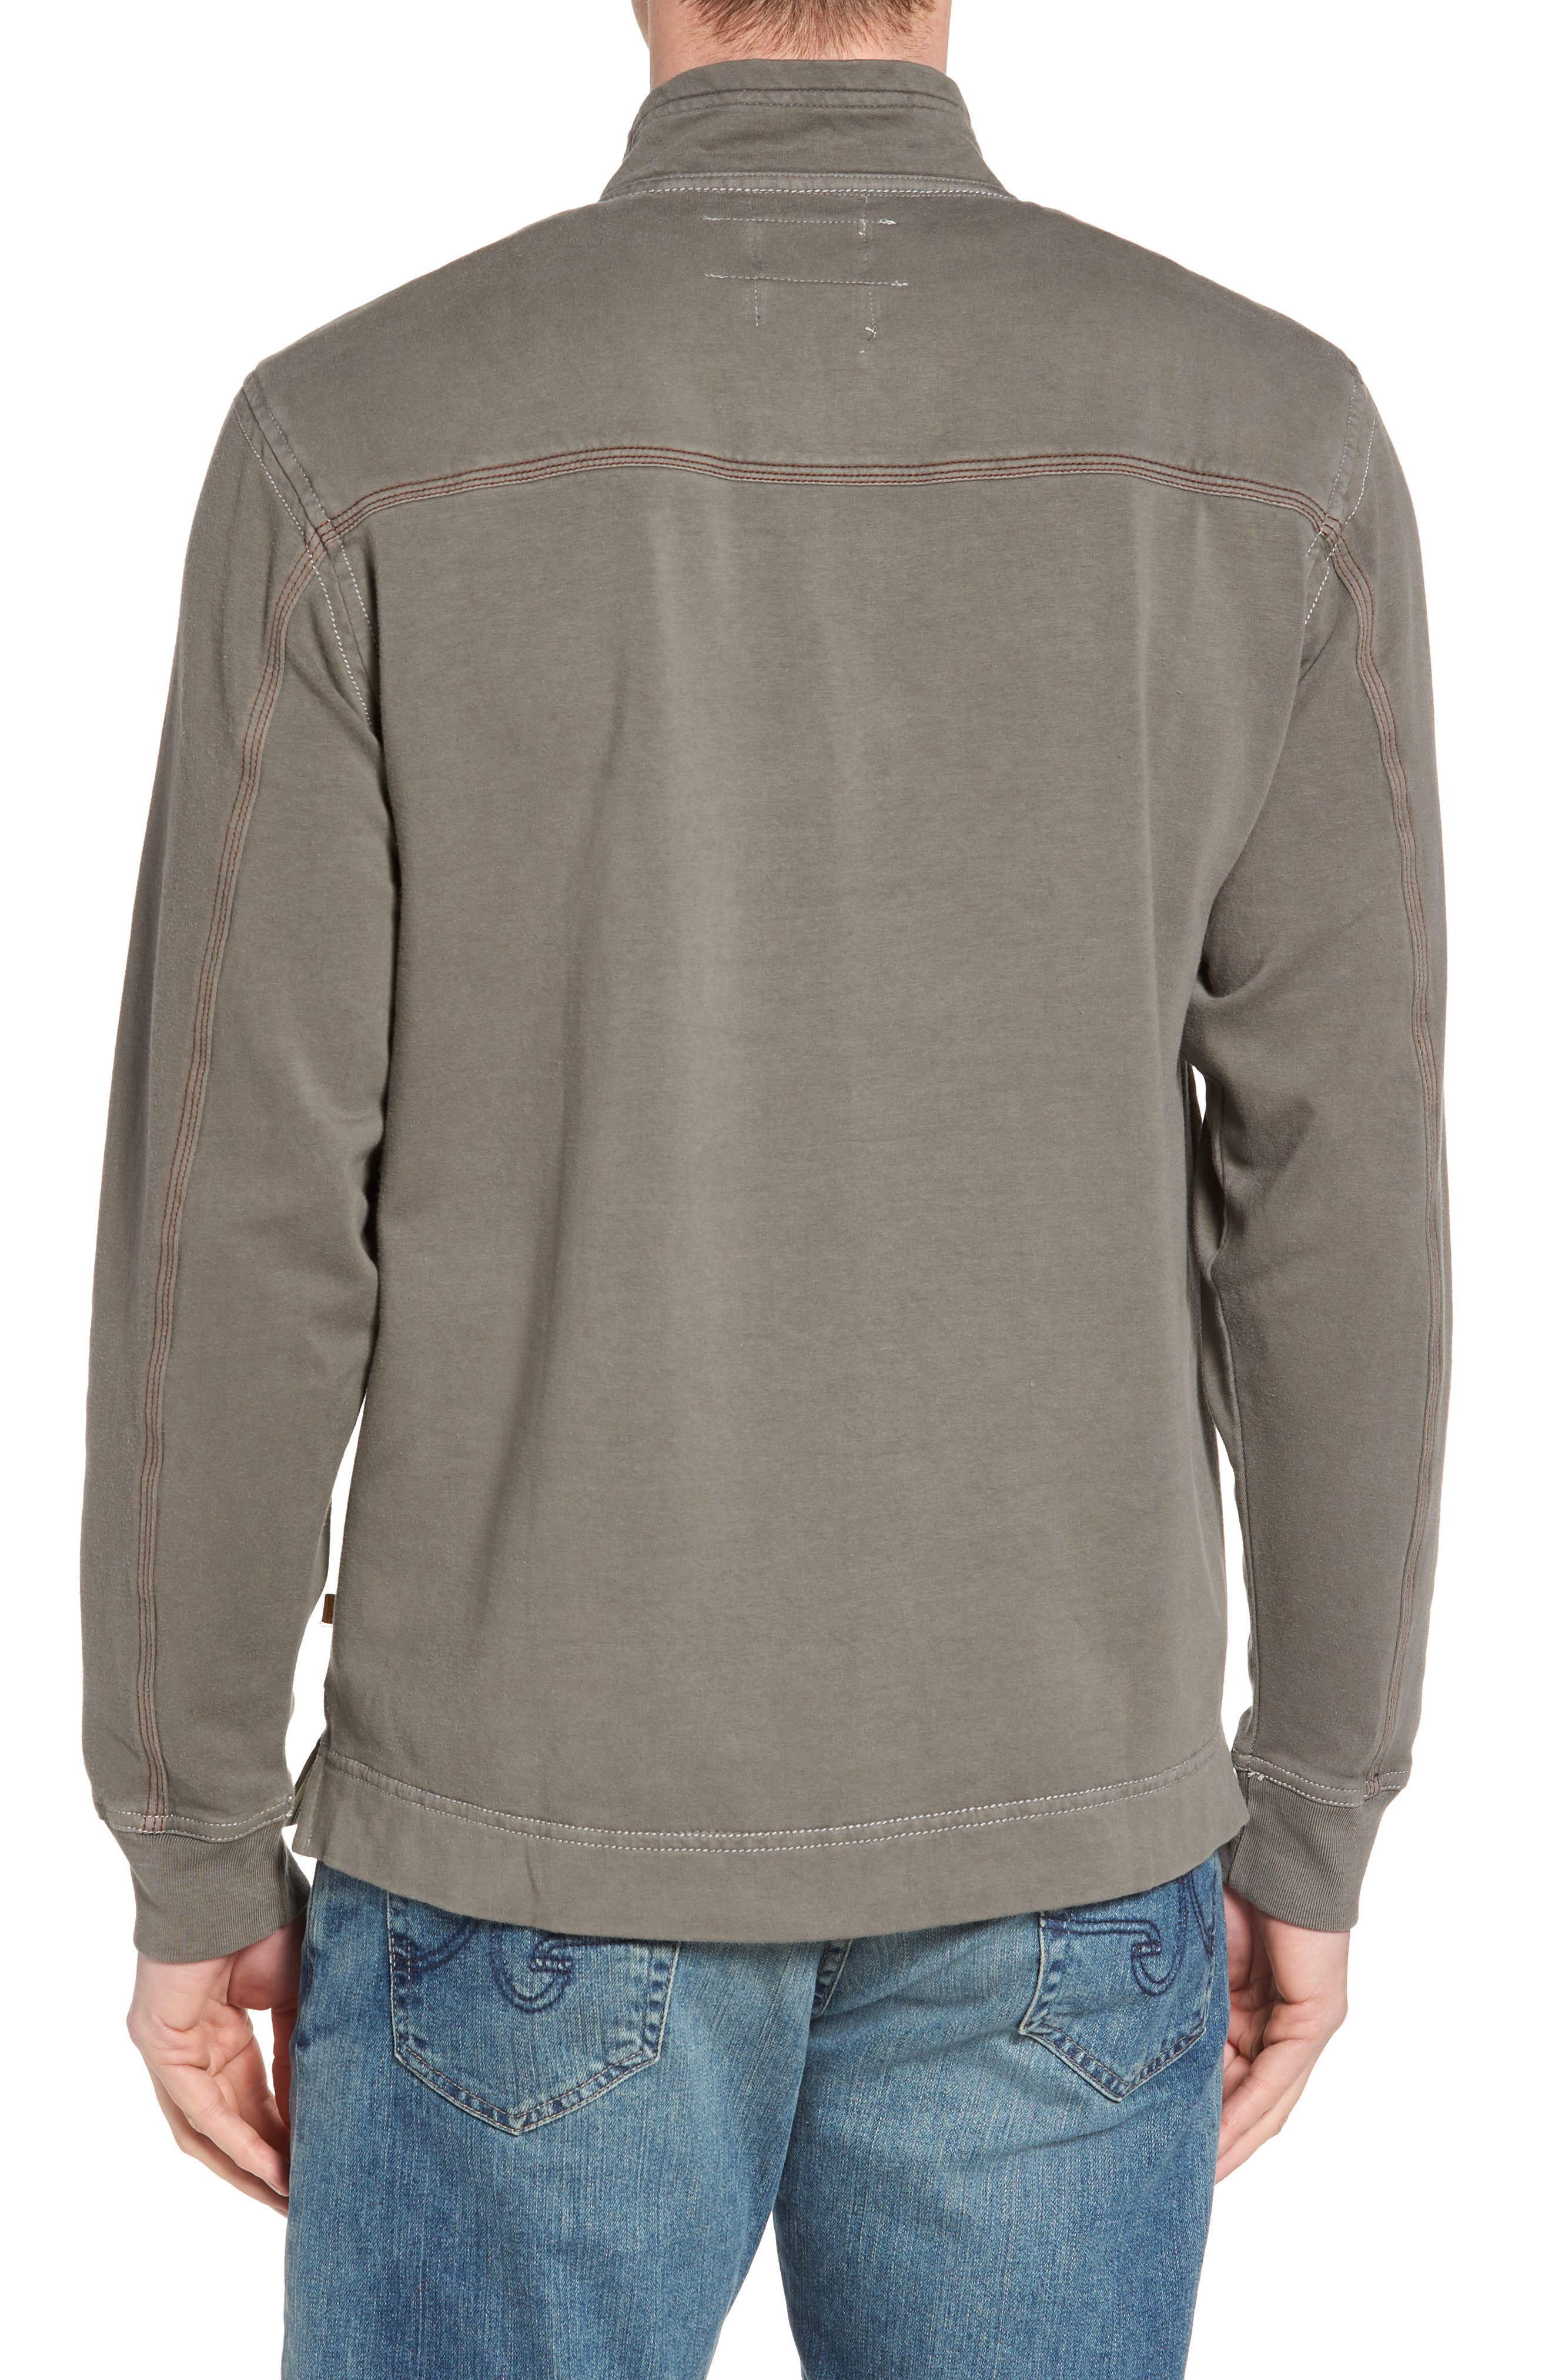 Quarter Zip Fleece Pullover,                             Alternate thumbnail 2, color,                             020